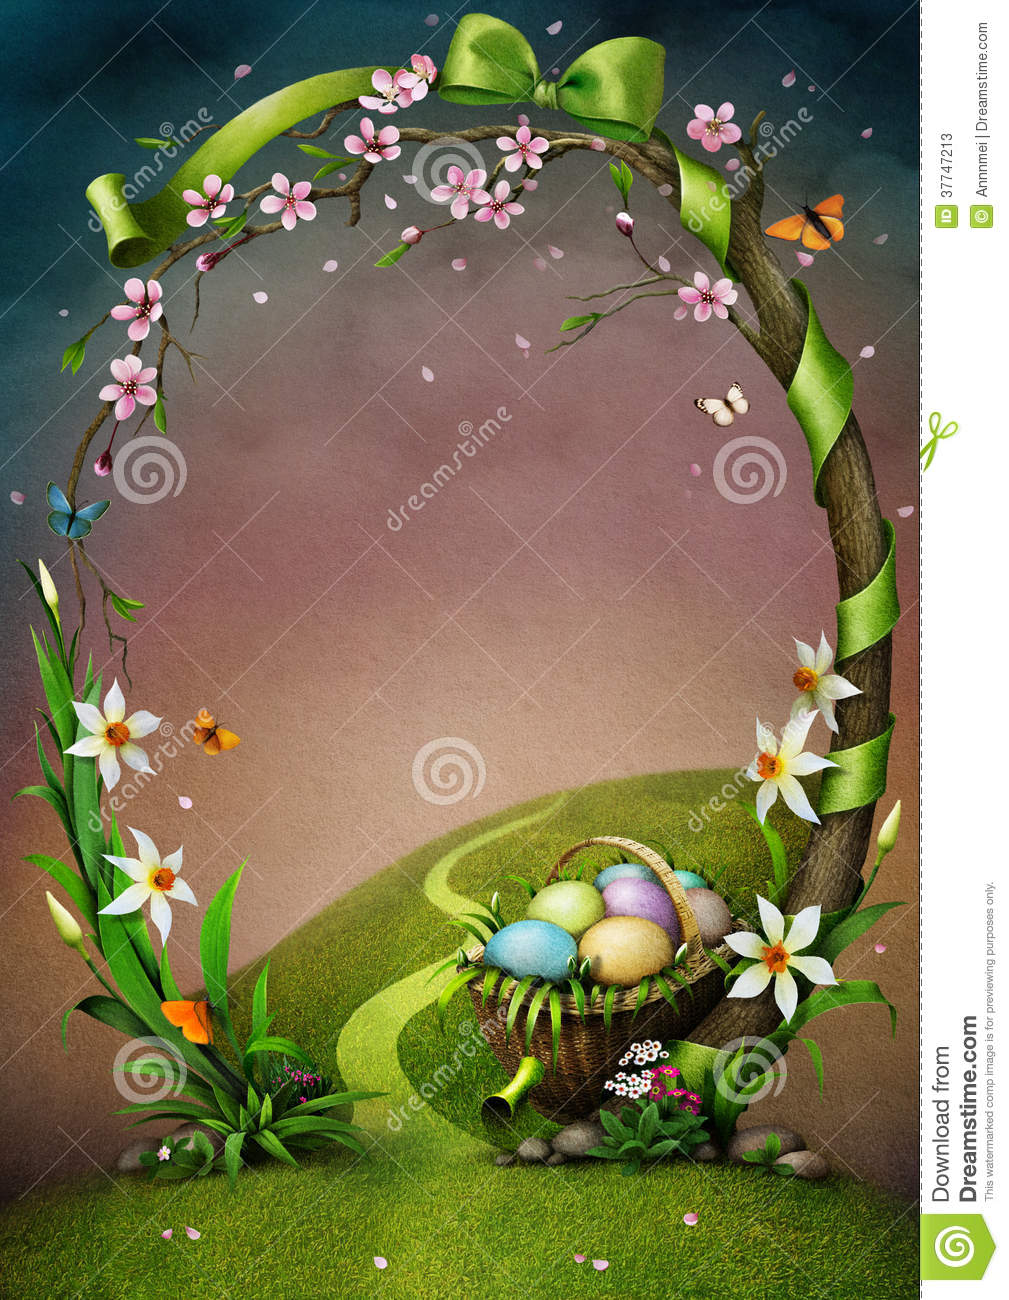 Beautiful spring frame with flowers and Easter eggs.